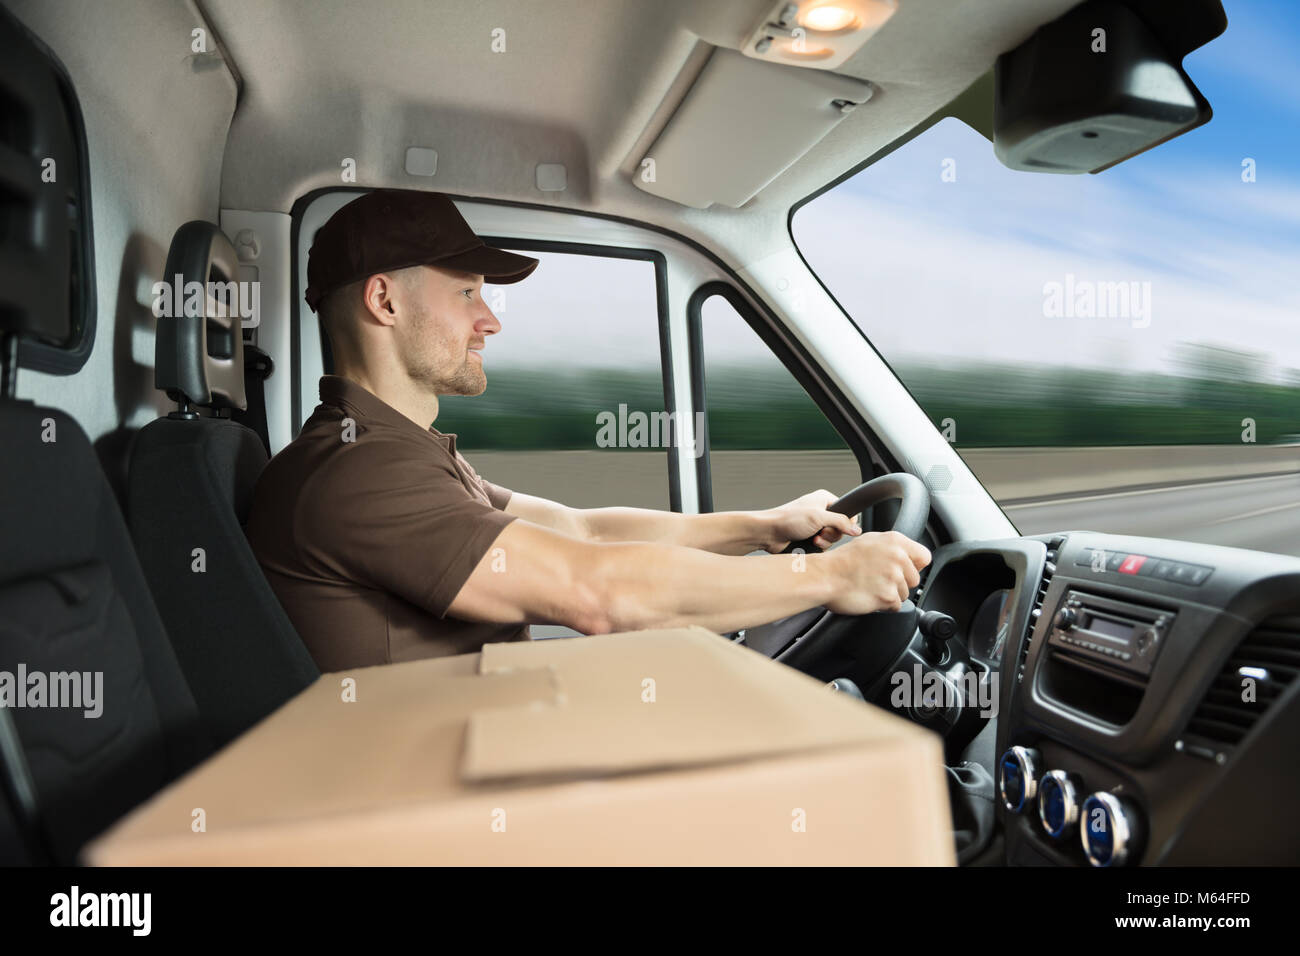 Portrait Of A Smiling Young Delivery Man Sitting Inside Van With Cardboard Box - Stock Image